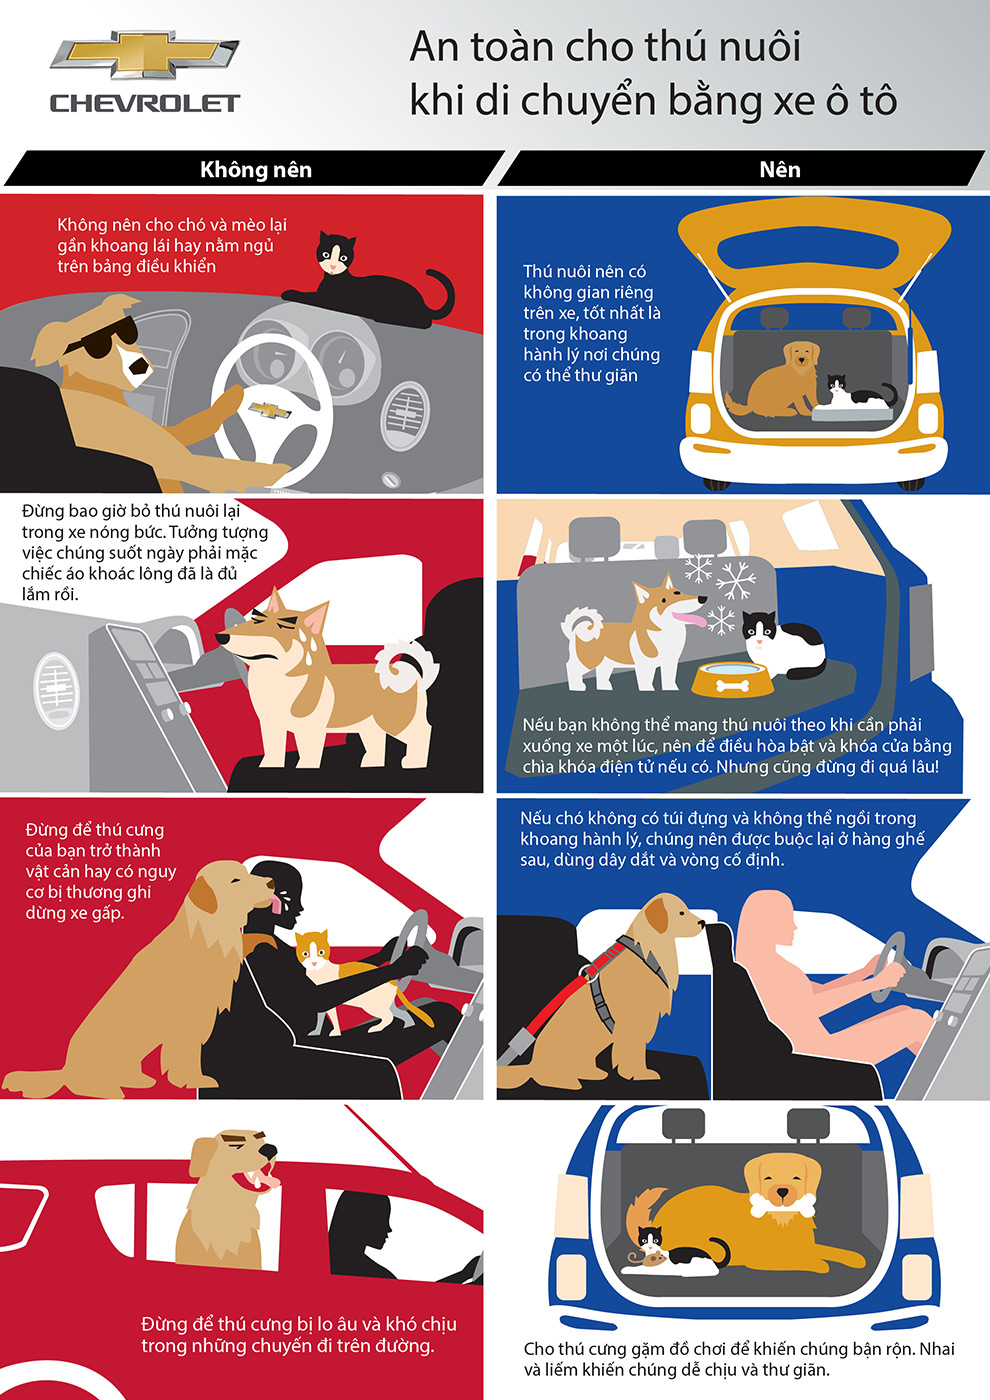 pet-safety-for-car-travel-vn.jpg